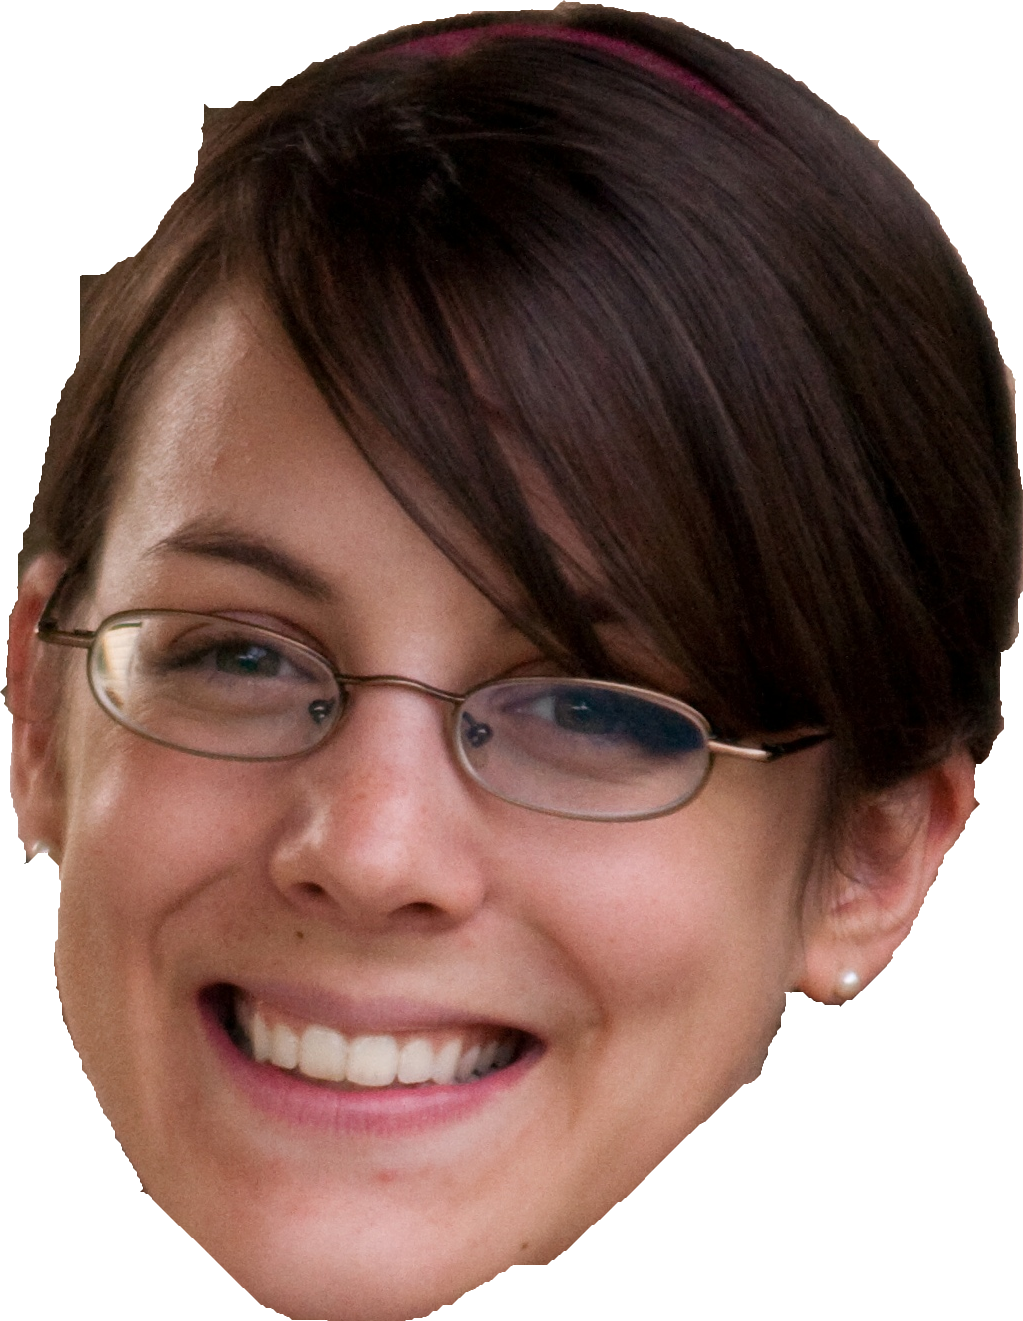 File:Lori Phillips head.png - PNG Head